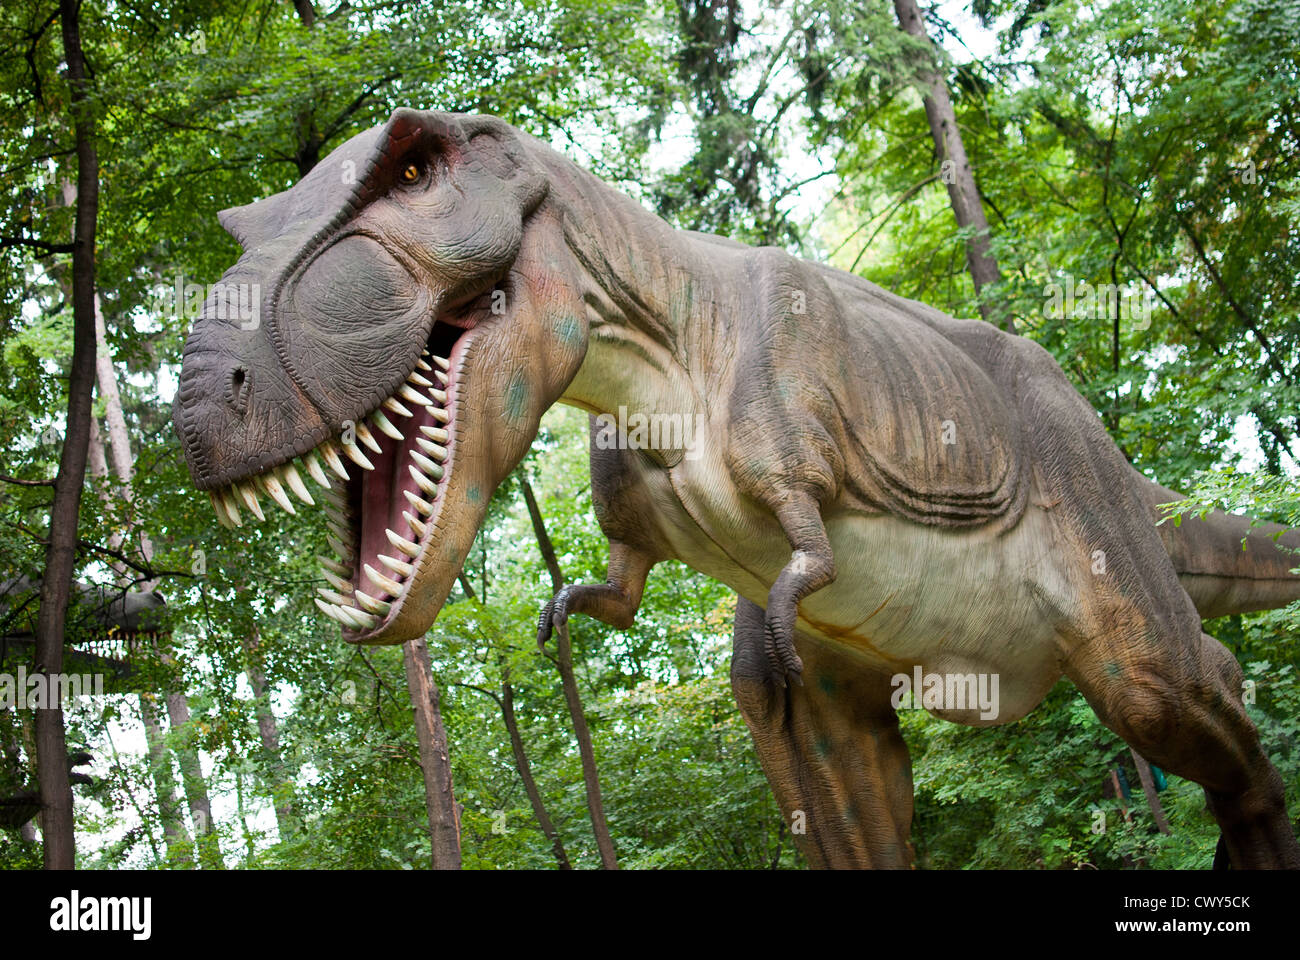 Tyrannosaurus rex - dinosaur in the dark forest - Stock Image